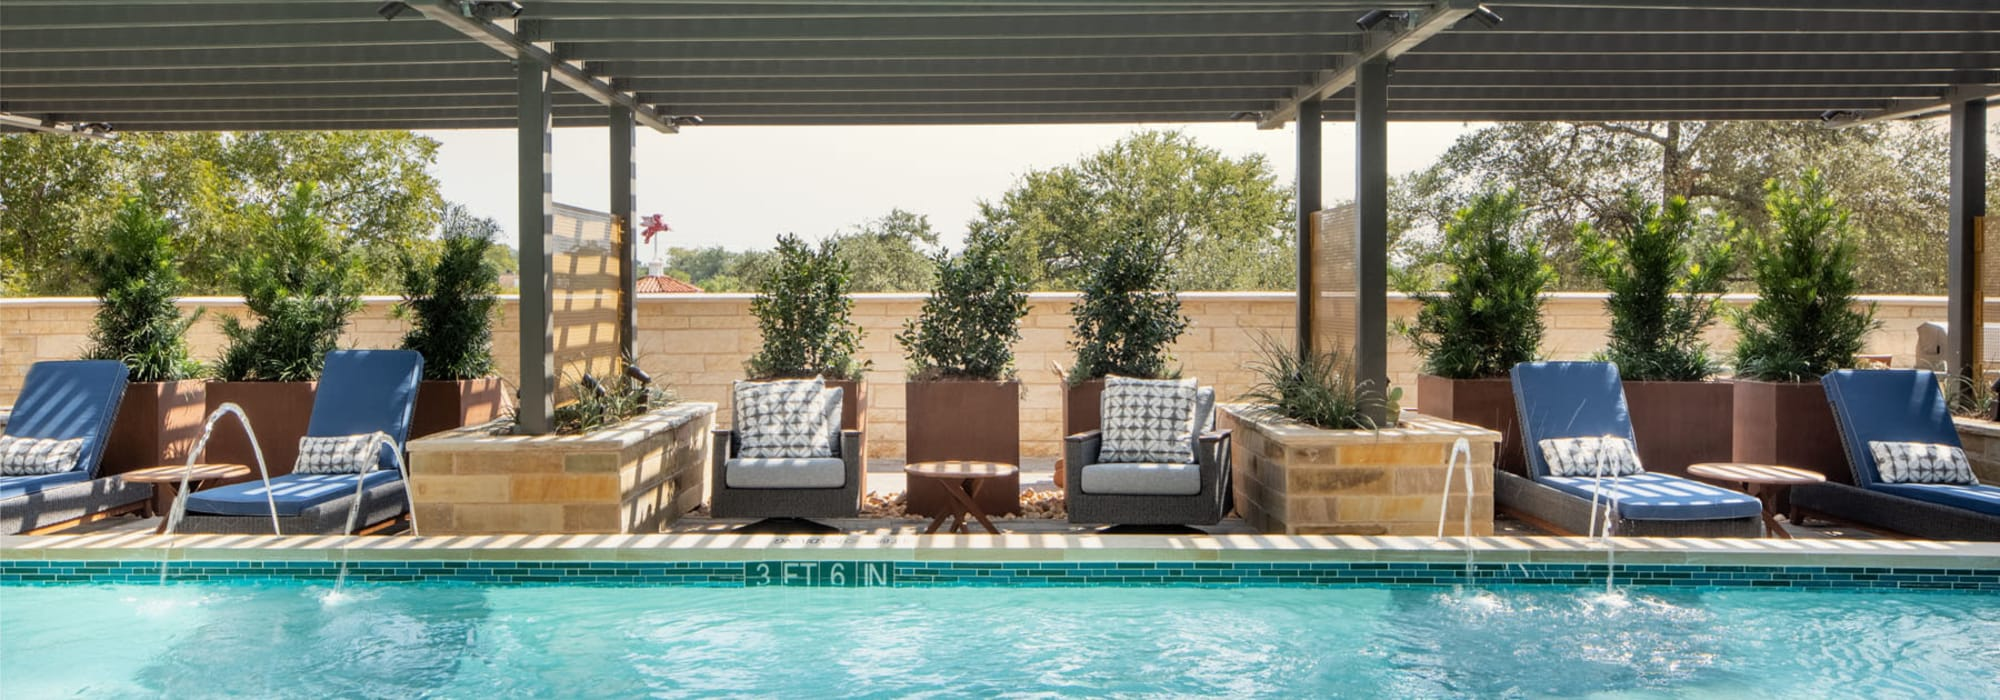 Resort-style swimming pool with shaded lounge seating nearby at Magnolia Heights in San Antonio, Texas